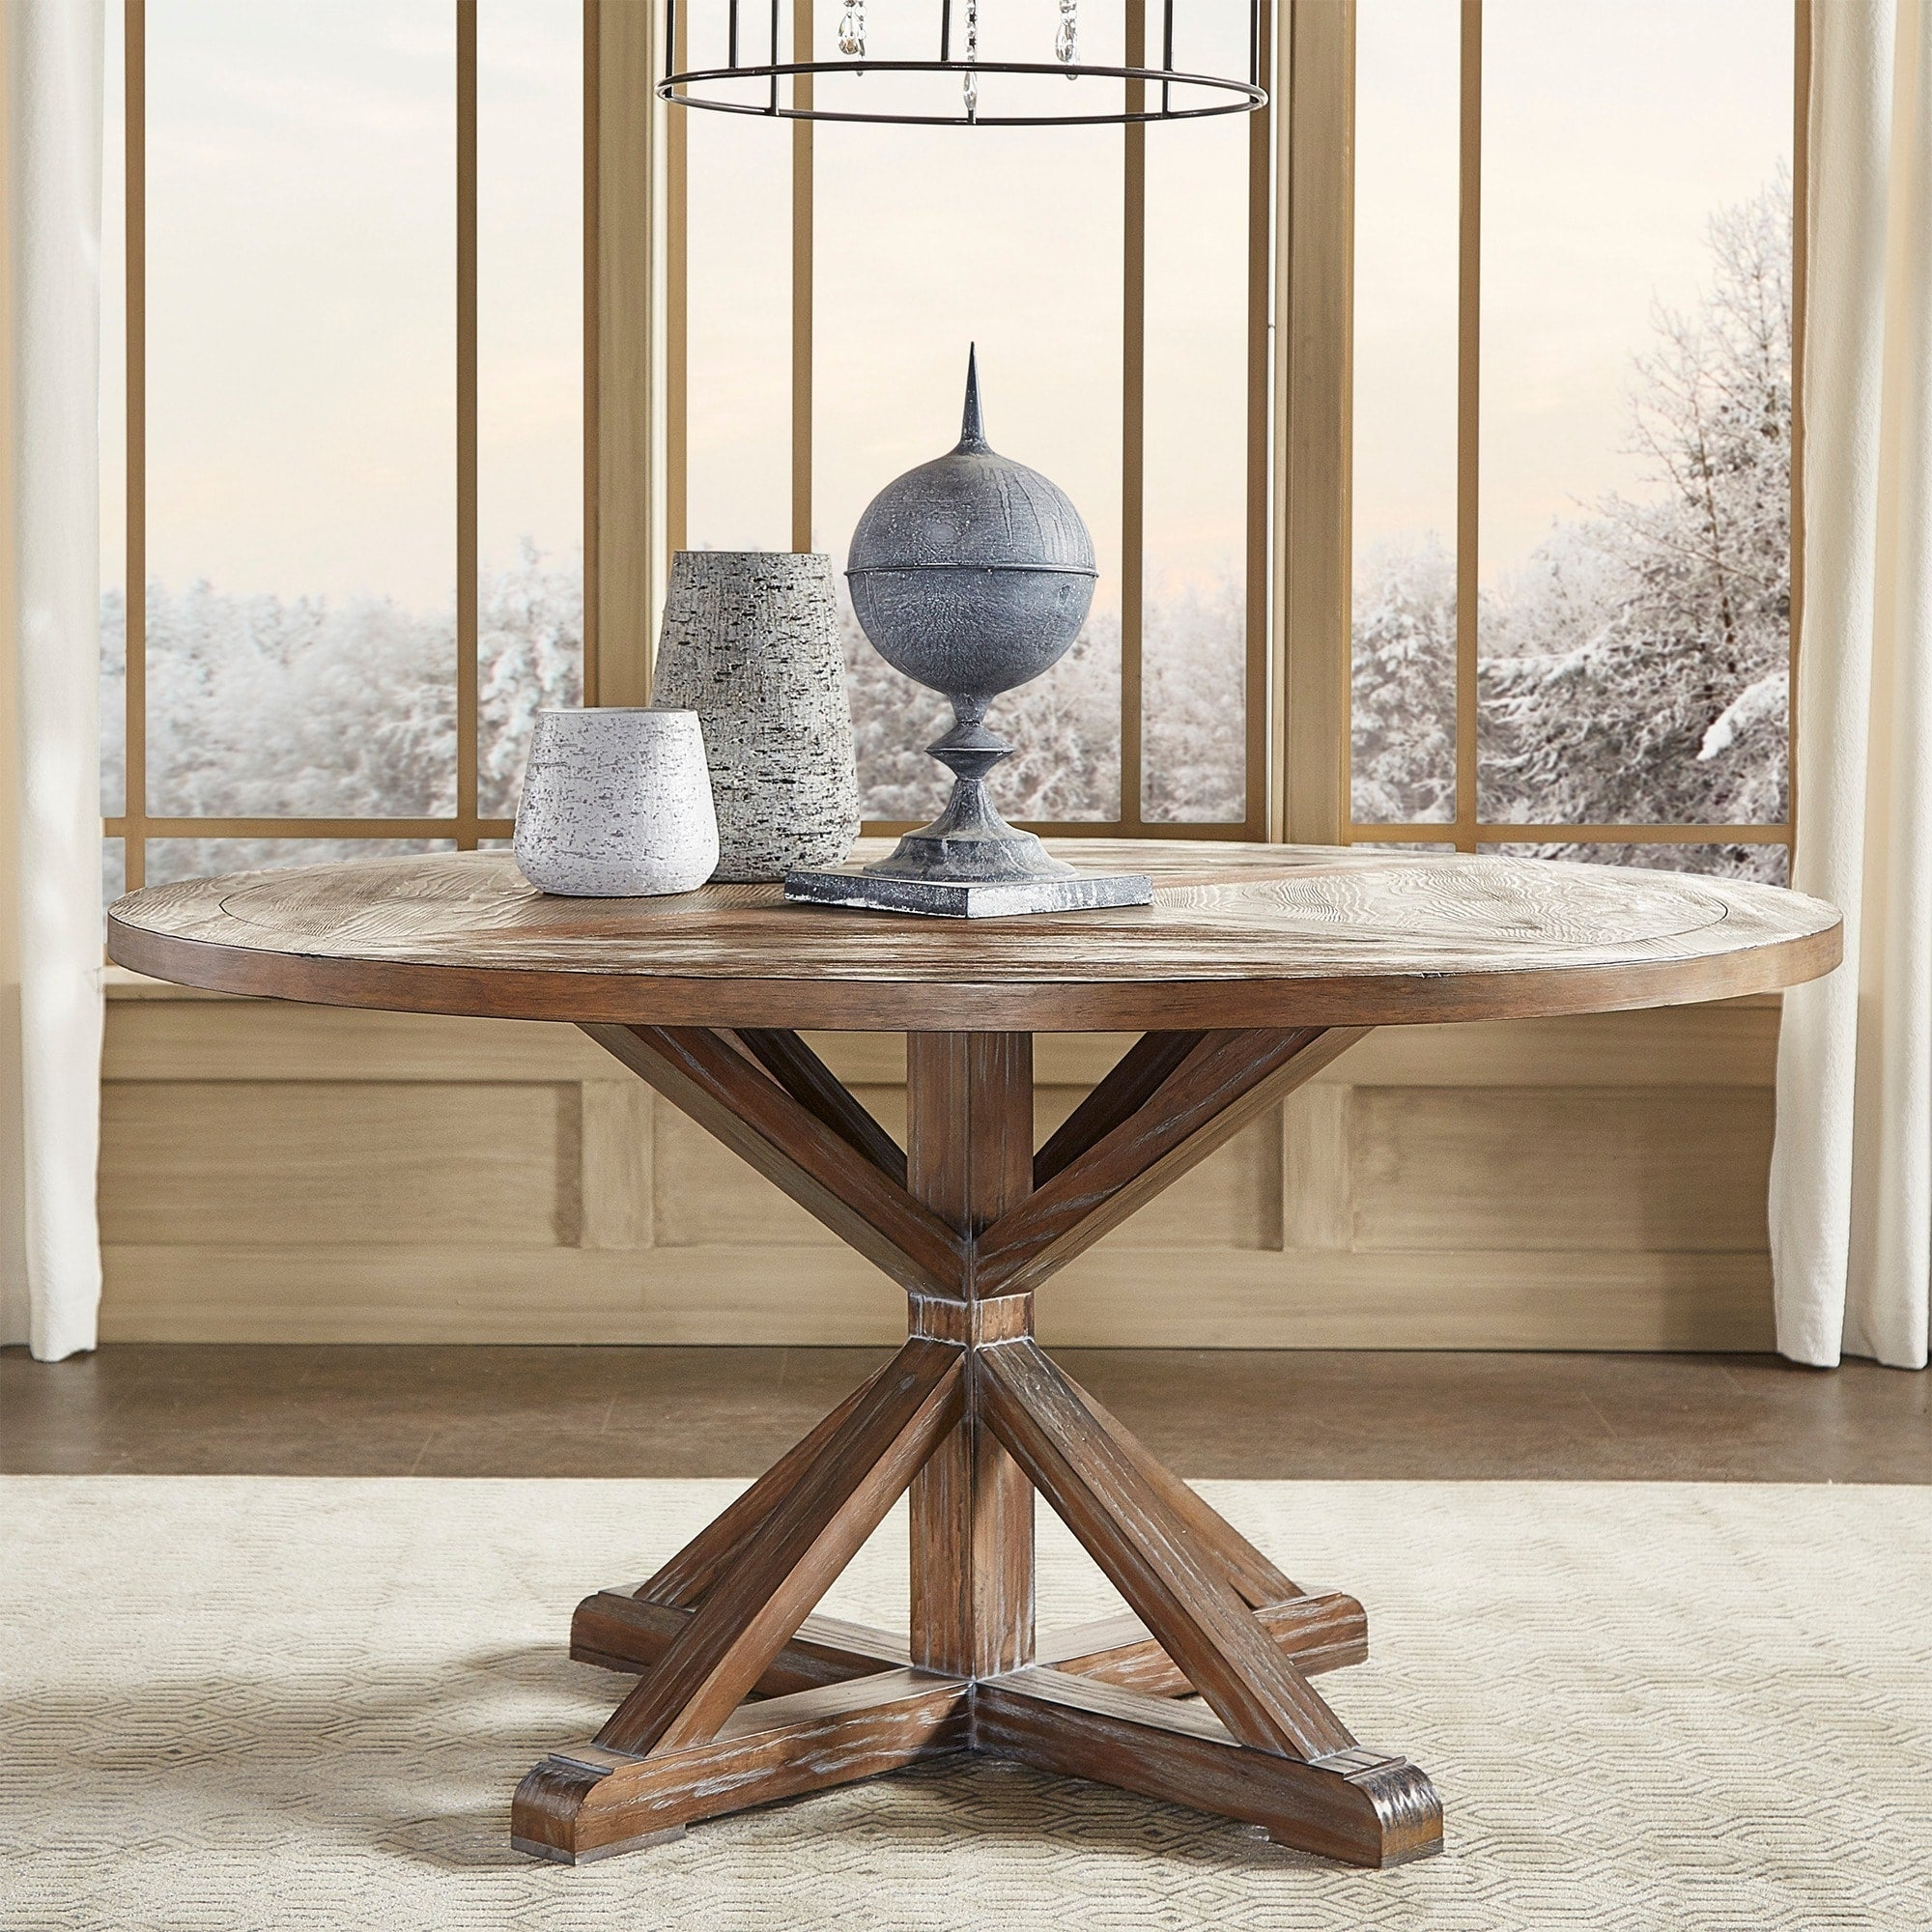 Superieur Rustic X Base Round Pine Wood Dining Table